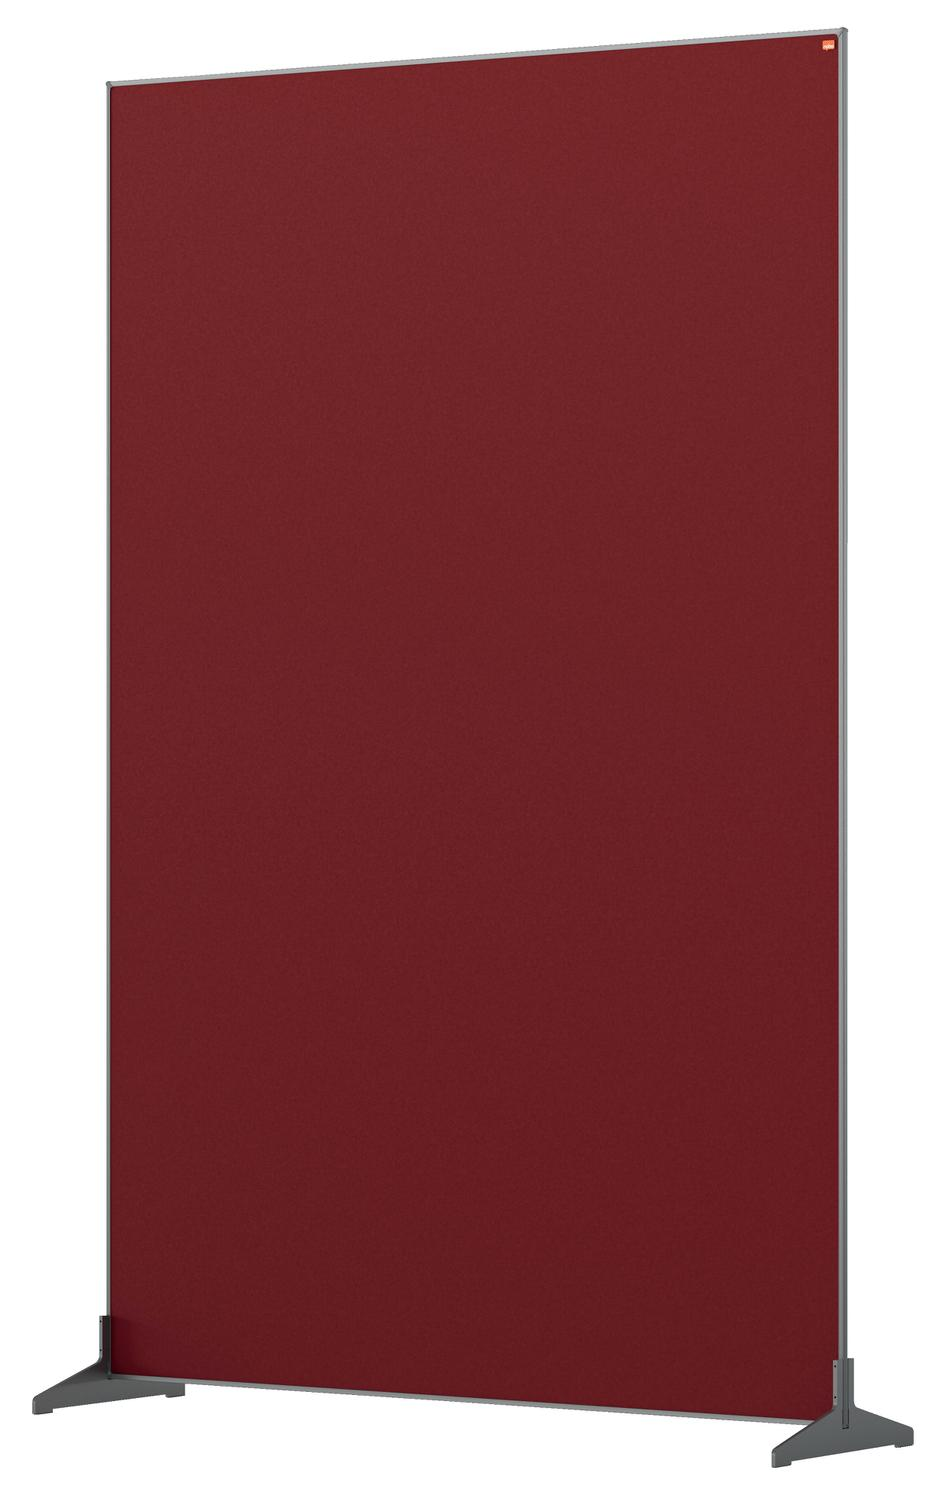 Straight Tops Nobo Impression Pro Floor Divider 1200x1800mm Red